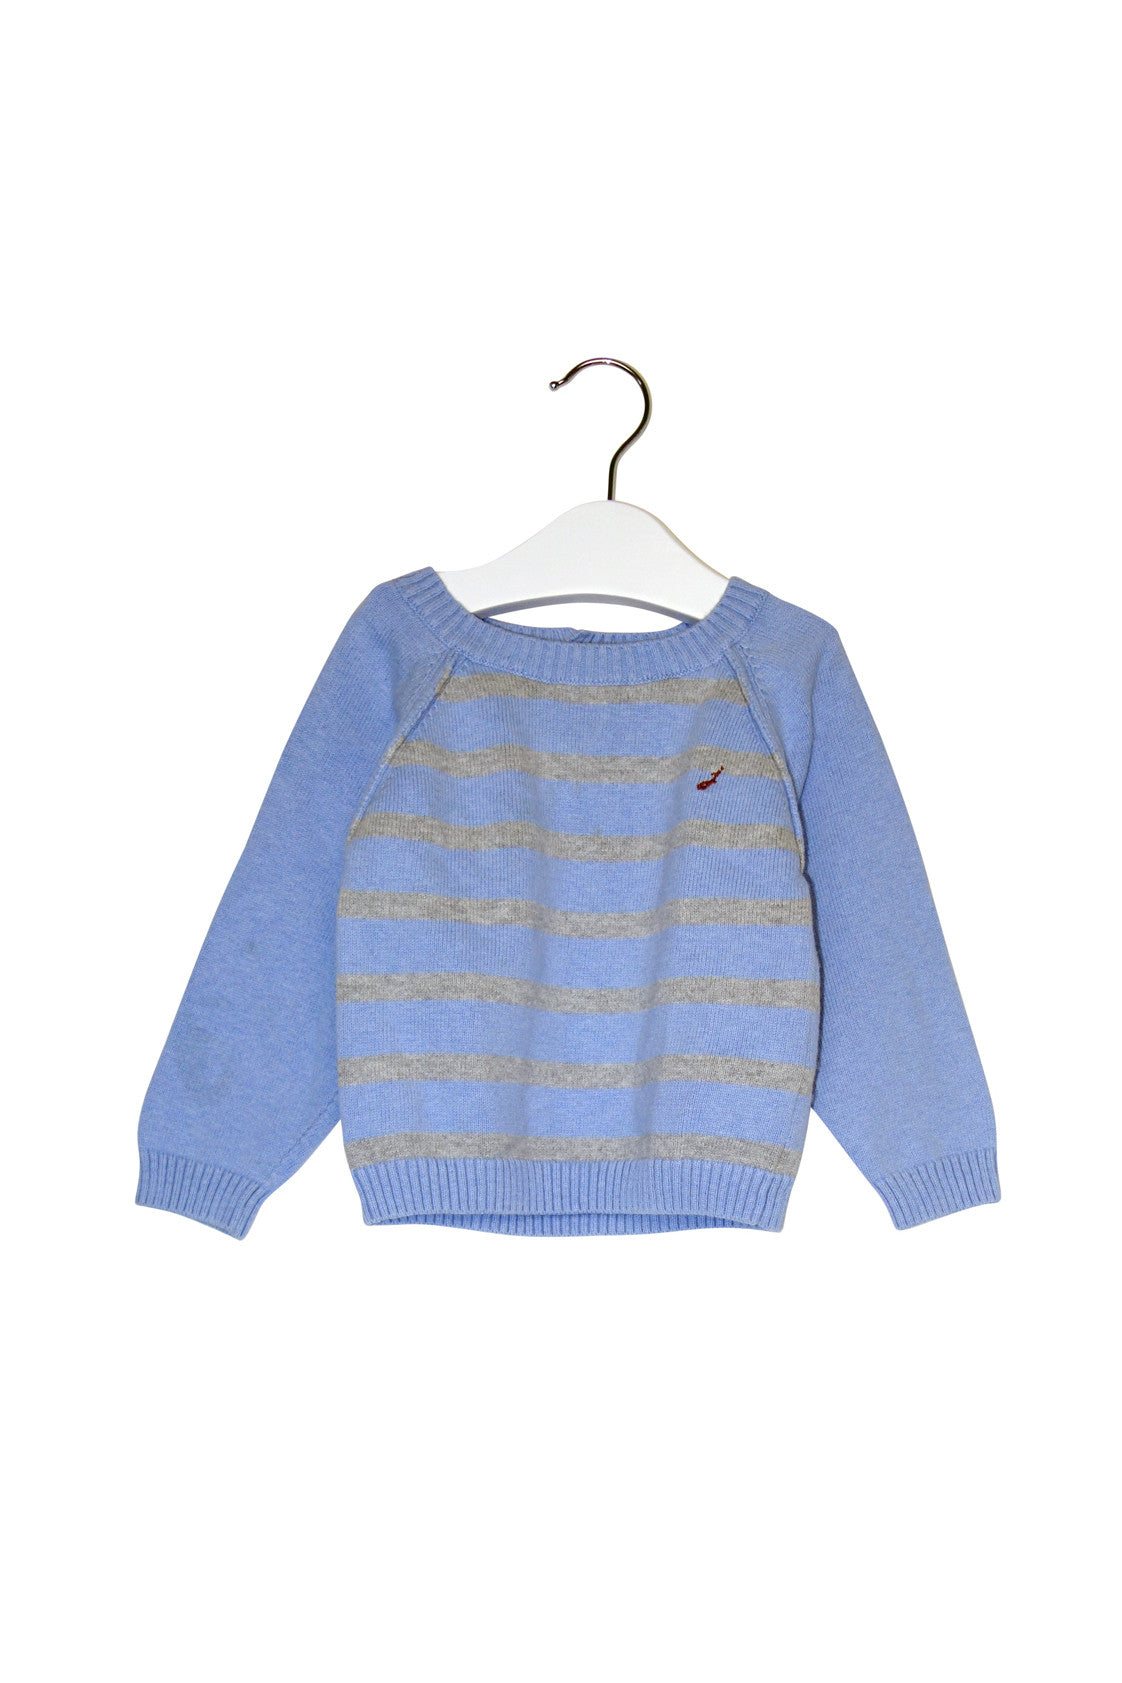 10001390 Jacadi Baby~Sweater 18M at Retykle